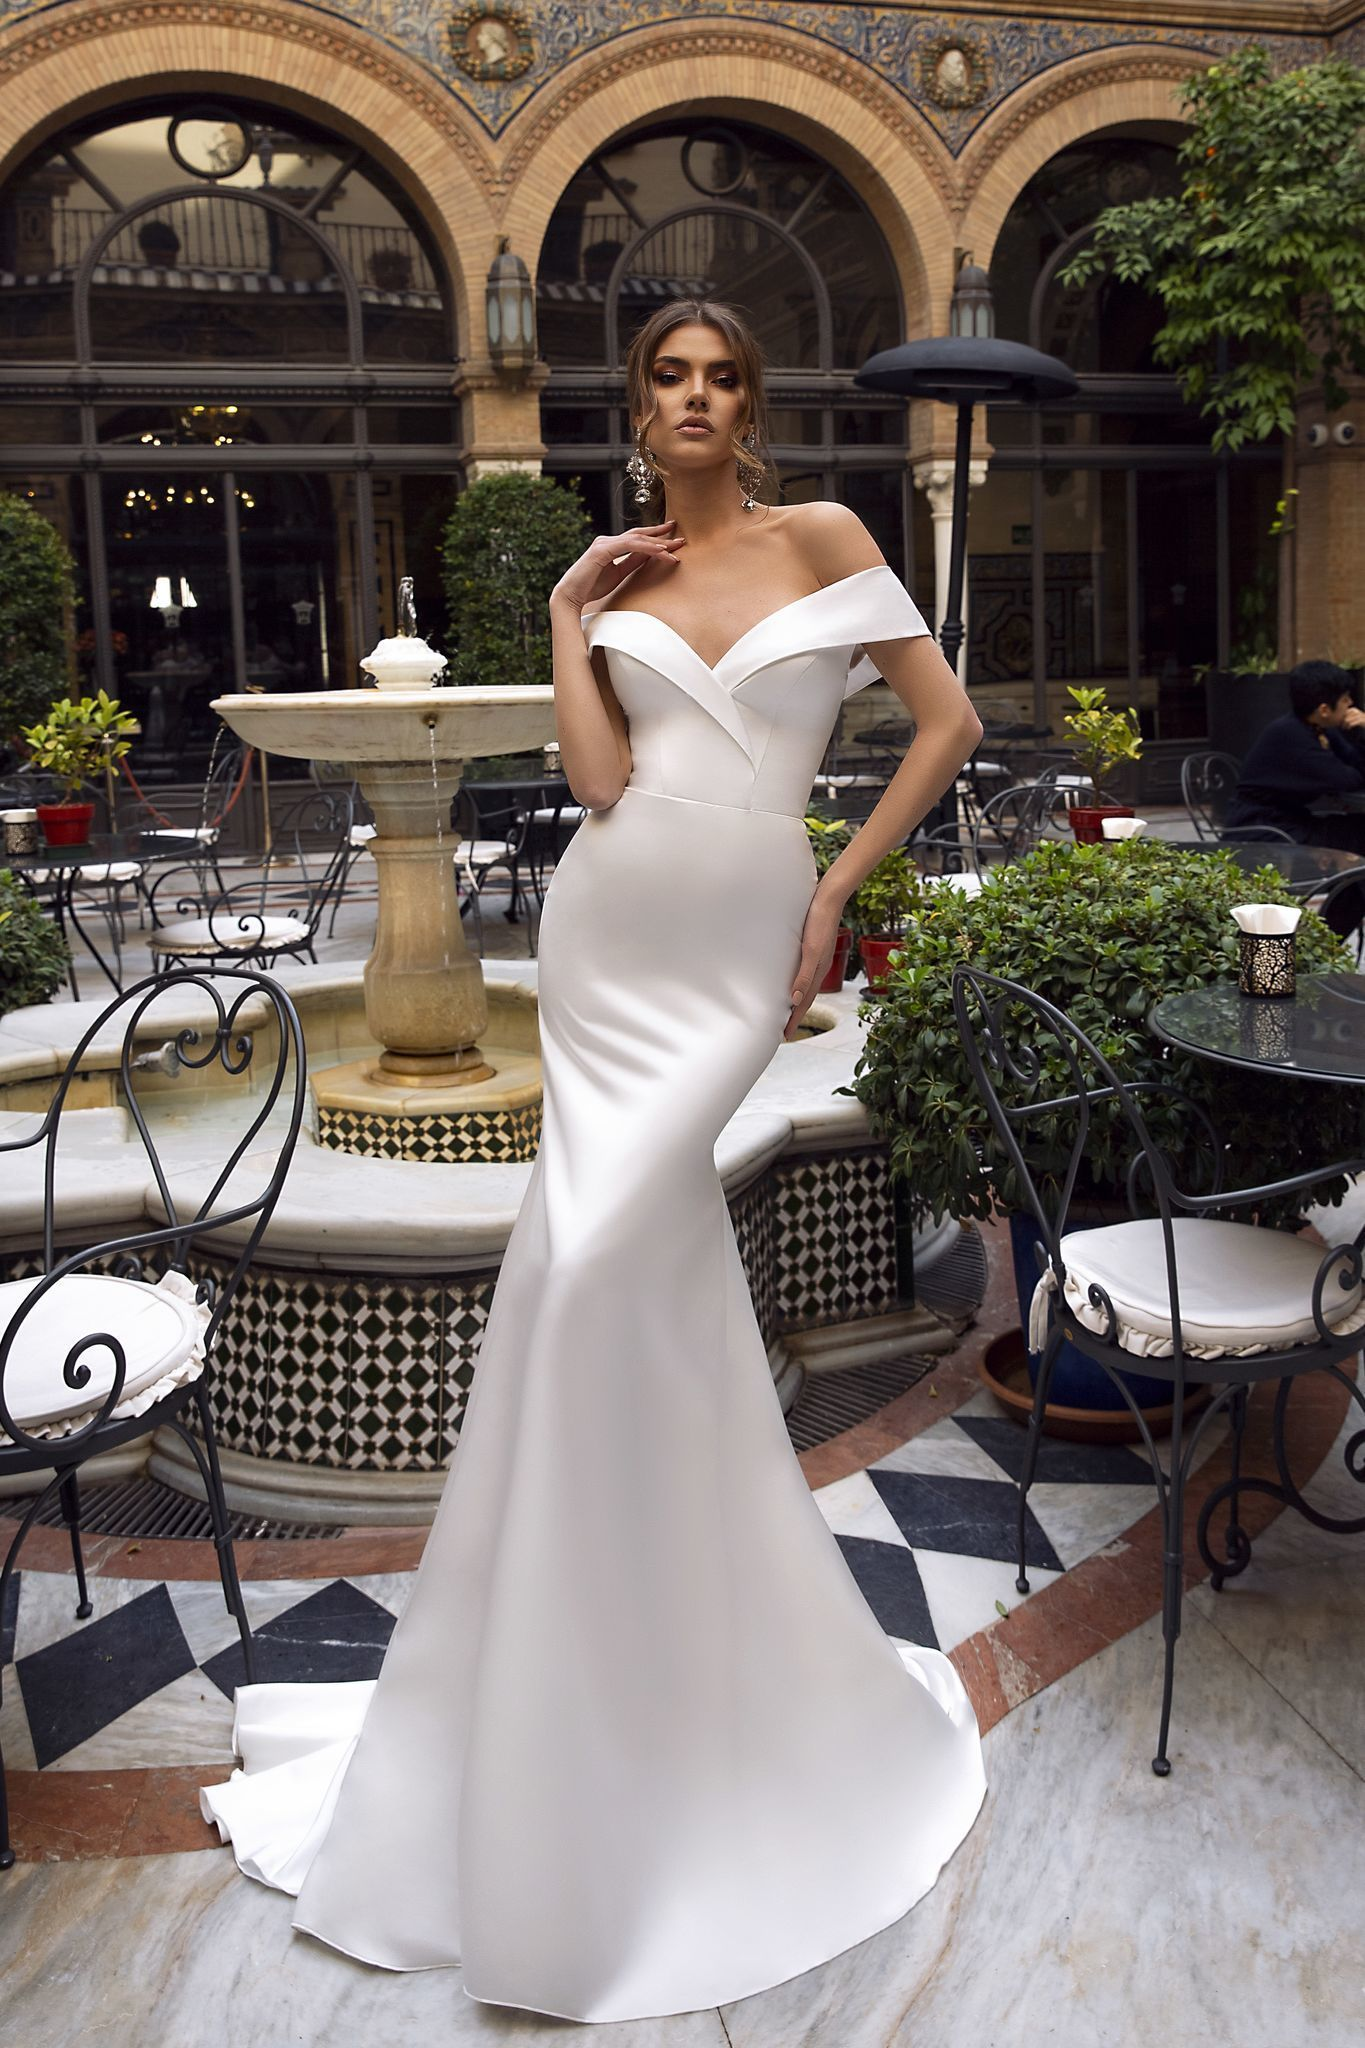 Cw191 Simple Satin Sweetheart Off The Shoulder Mermaid Wedding Dress Satin Mermaid Wedding Dress Off Shoulder Wedding Dress Mermaid Wedding Dress [ 2048 x 1365 Pixel ]